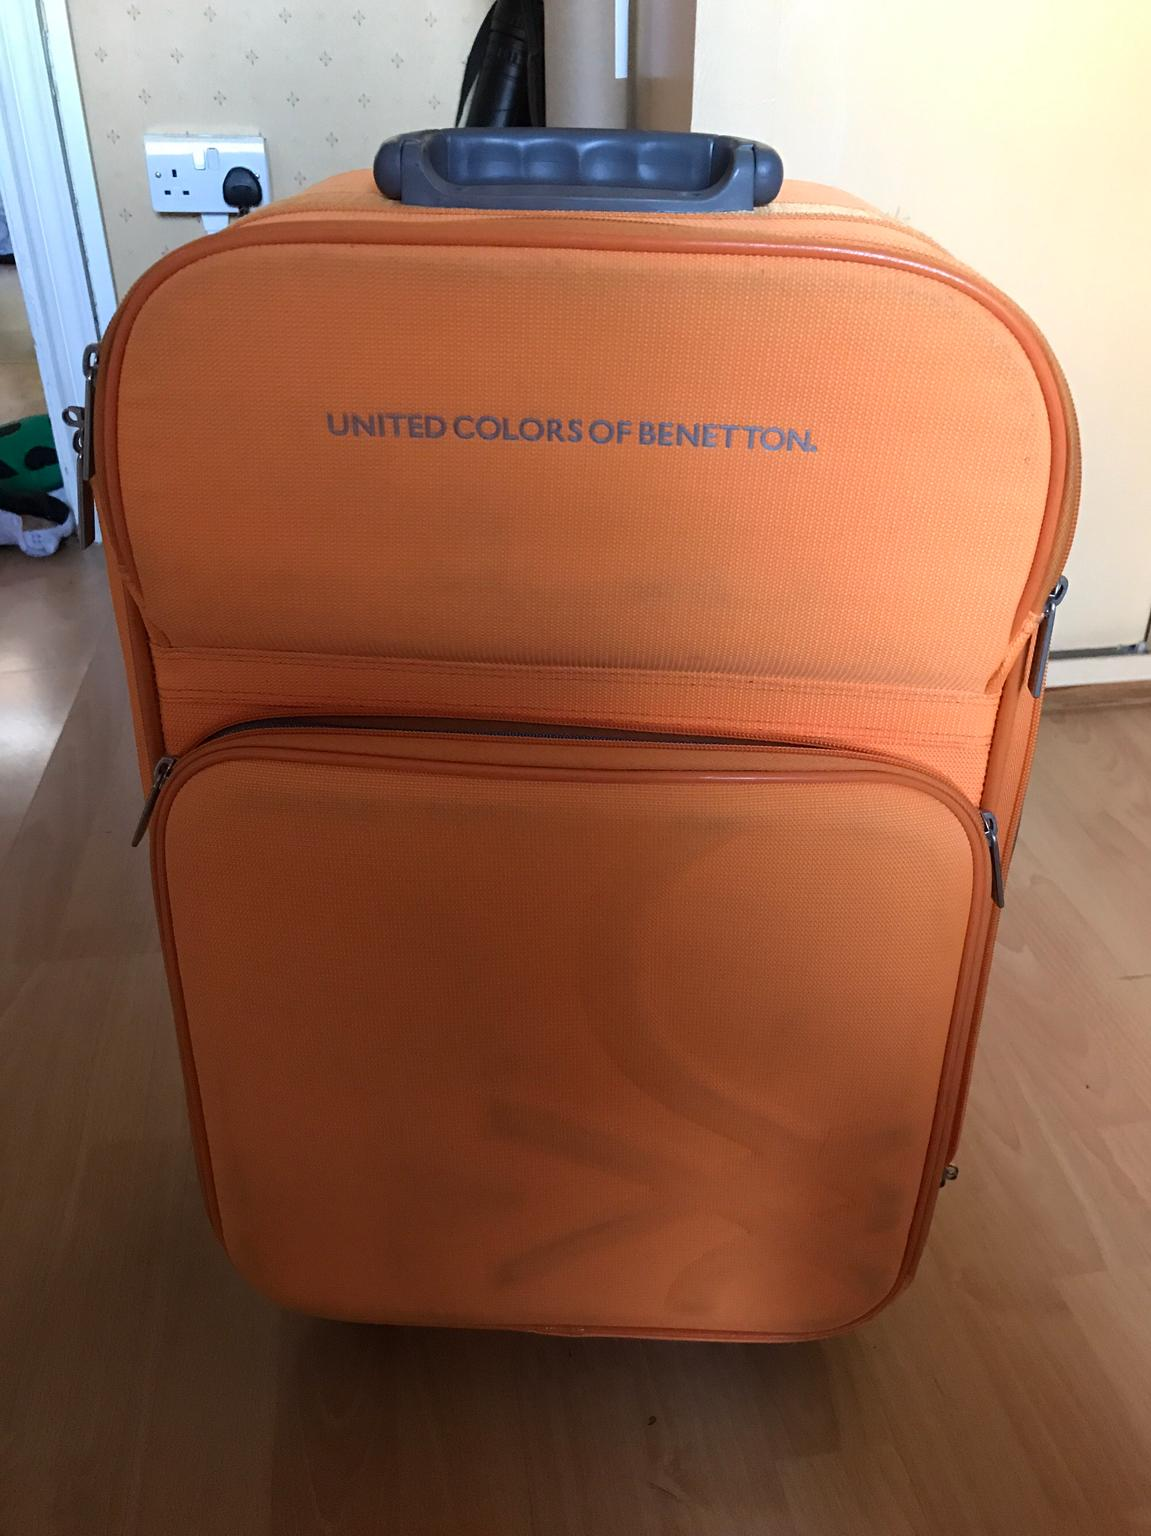 factory outlets temperament shoes new authentic United Colors of Benetton suitcase in W2 London for £5.00 for sale ...